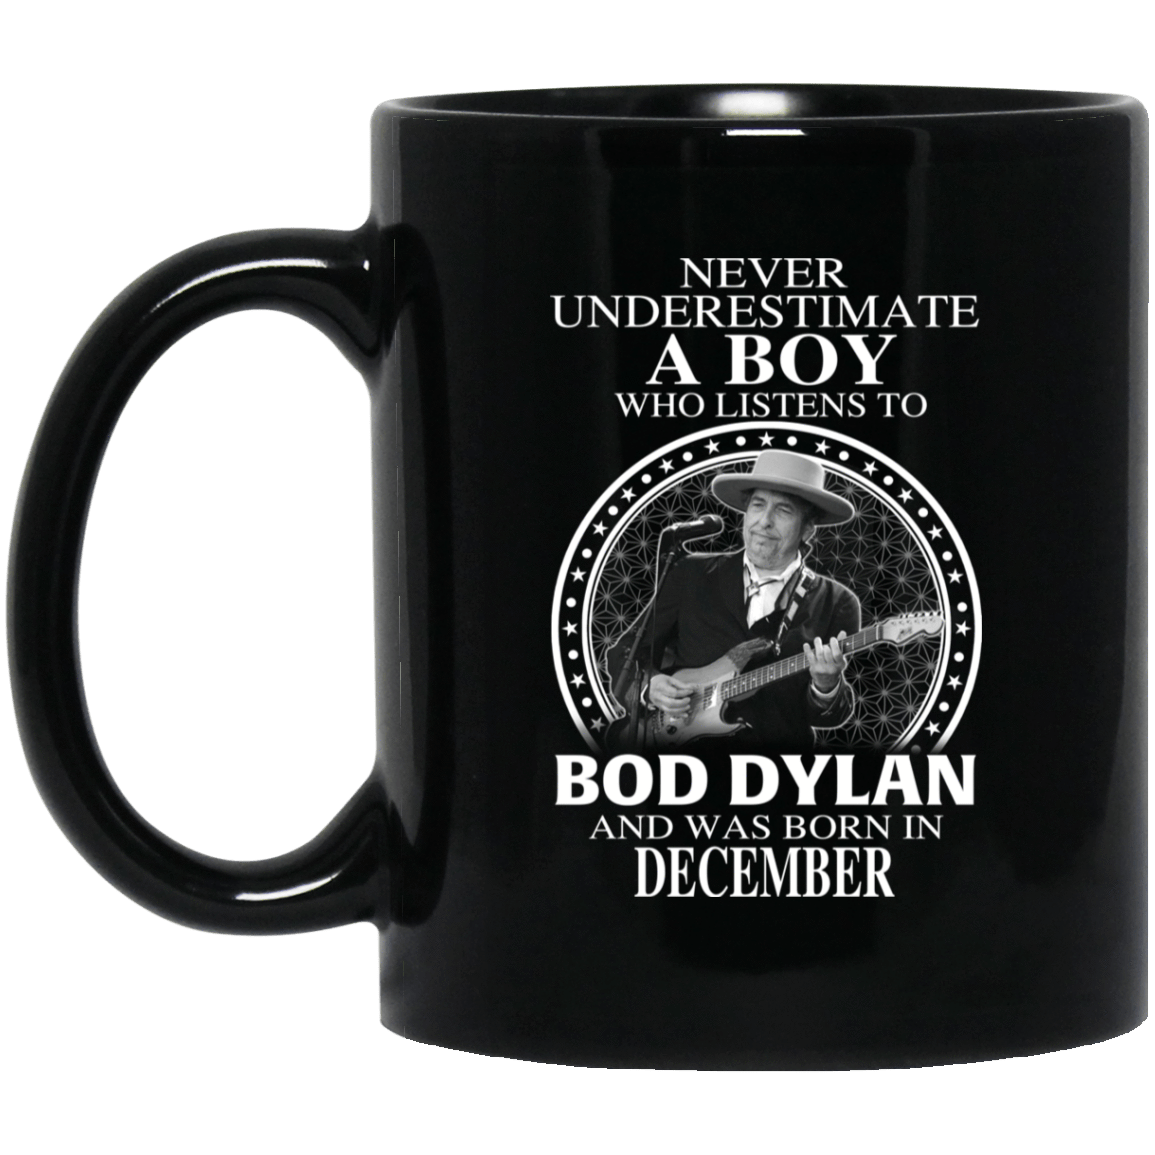 A Boy Who Listens To Bob Dylan And Was Born In December Mug 1065-10181-76154928-49307 - Tee Ript